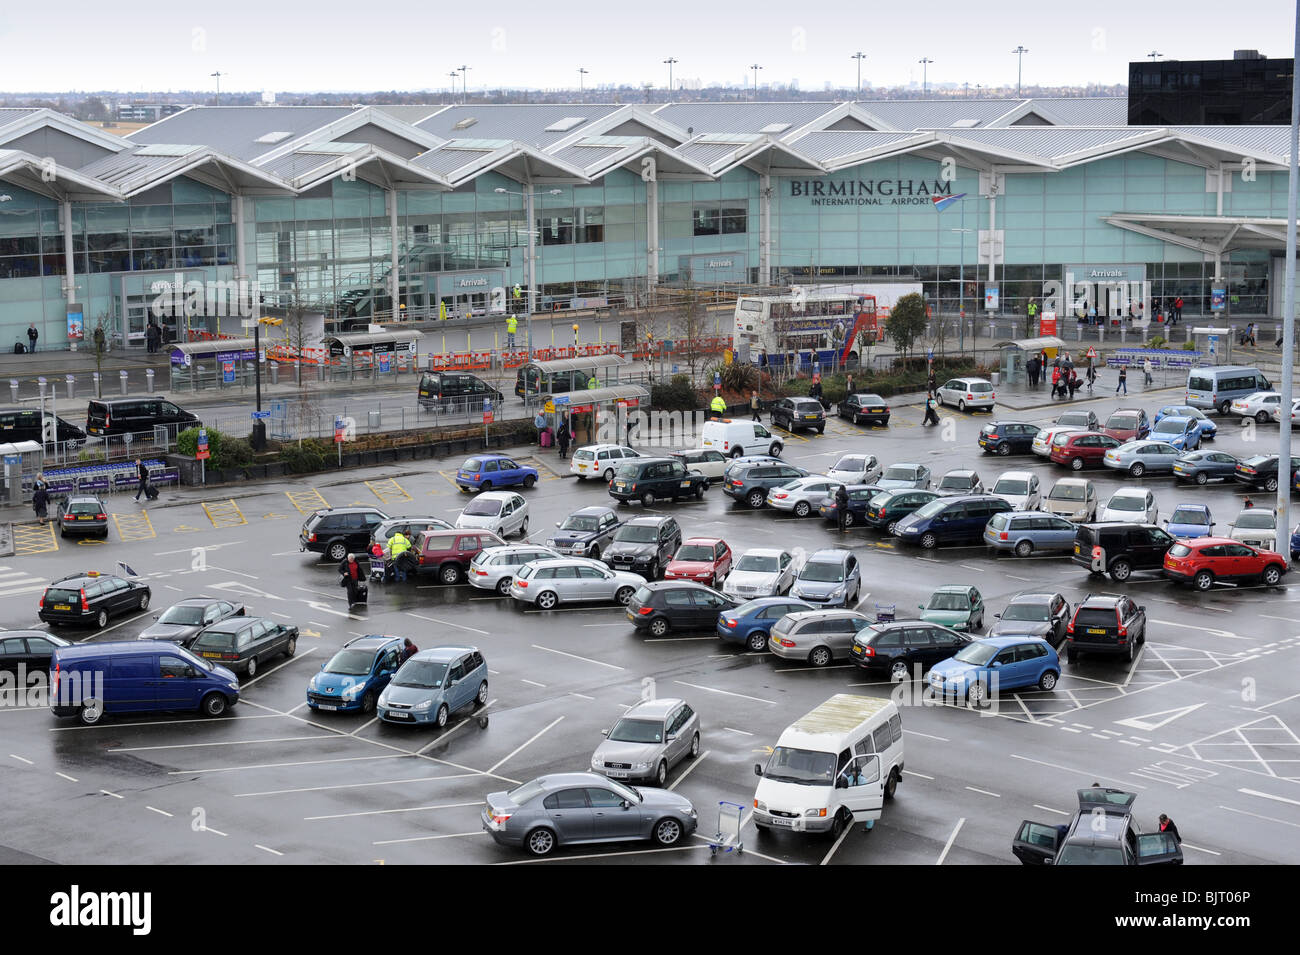 Birmingham Short Stay Car Park